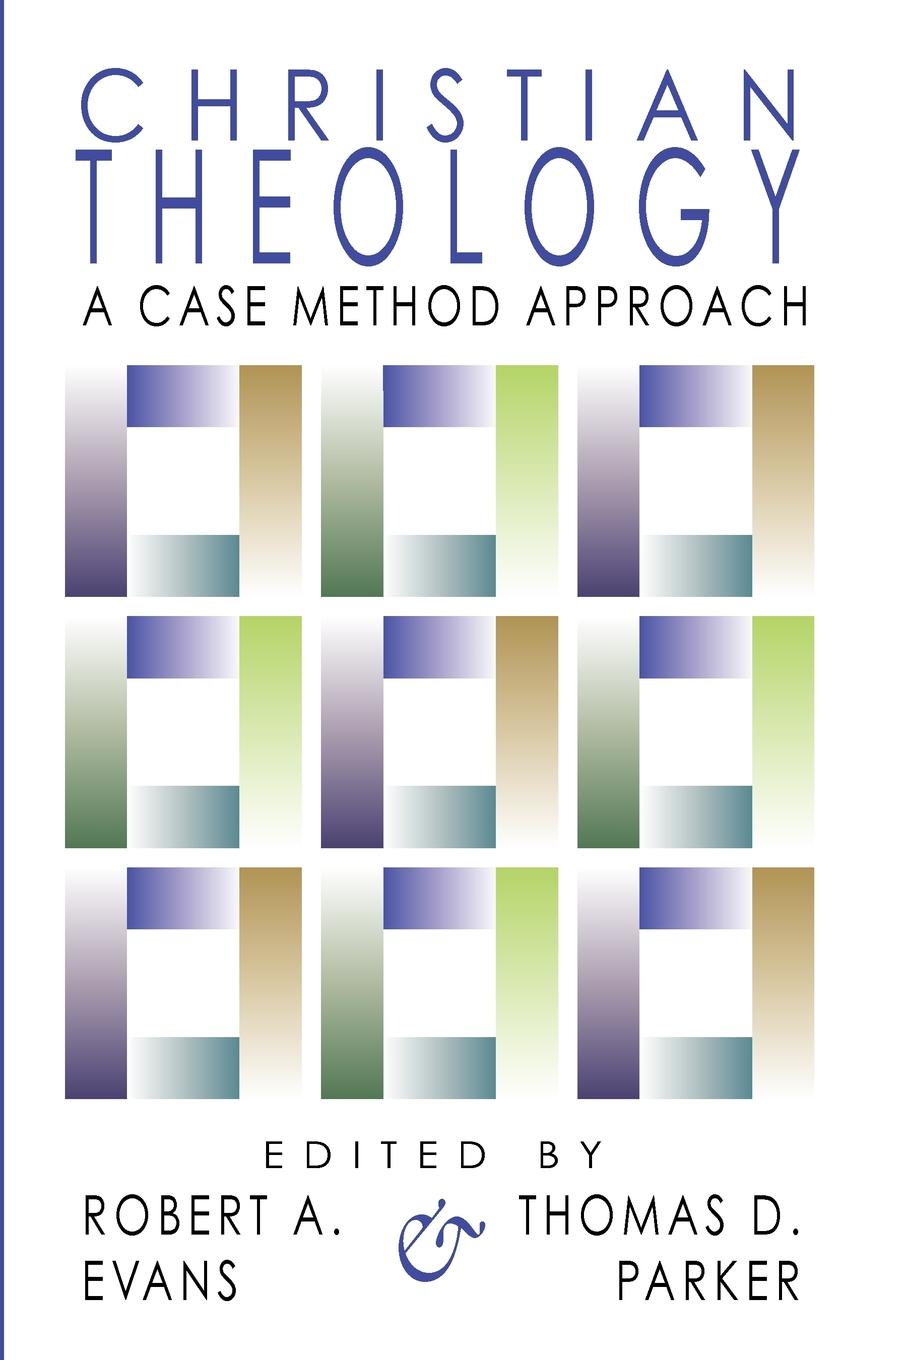 Christian Theology. A Case Method Approach